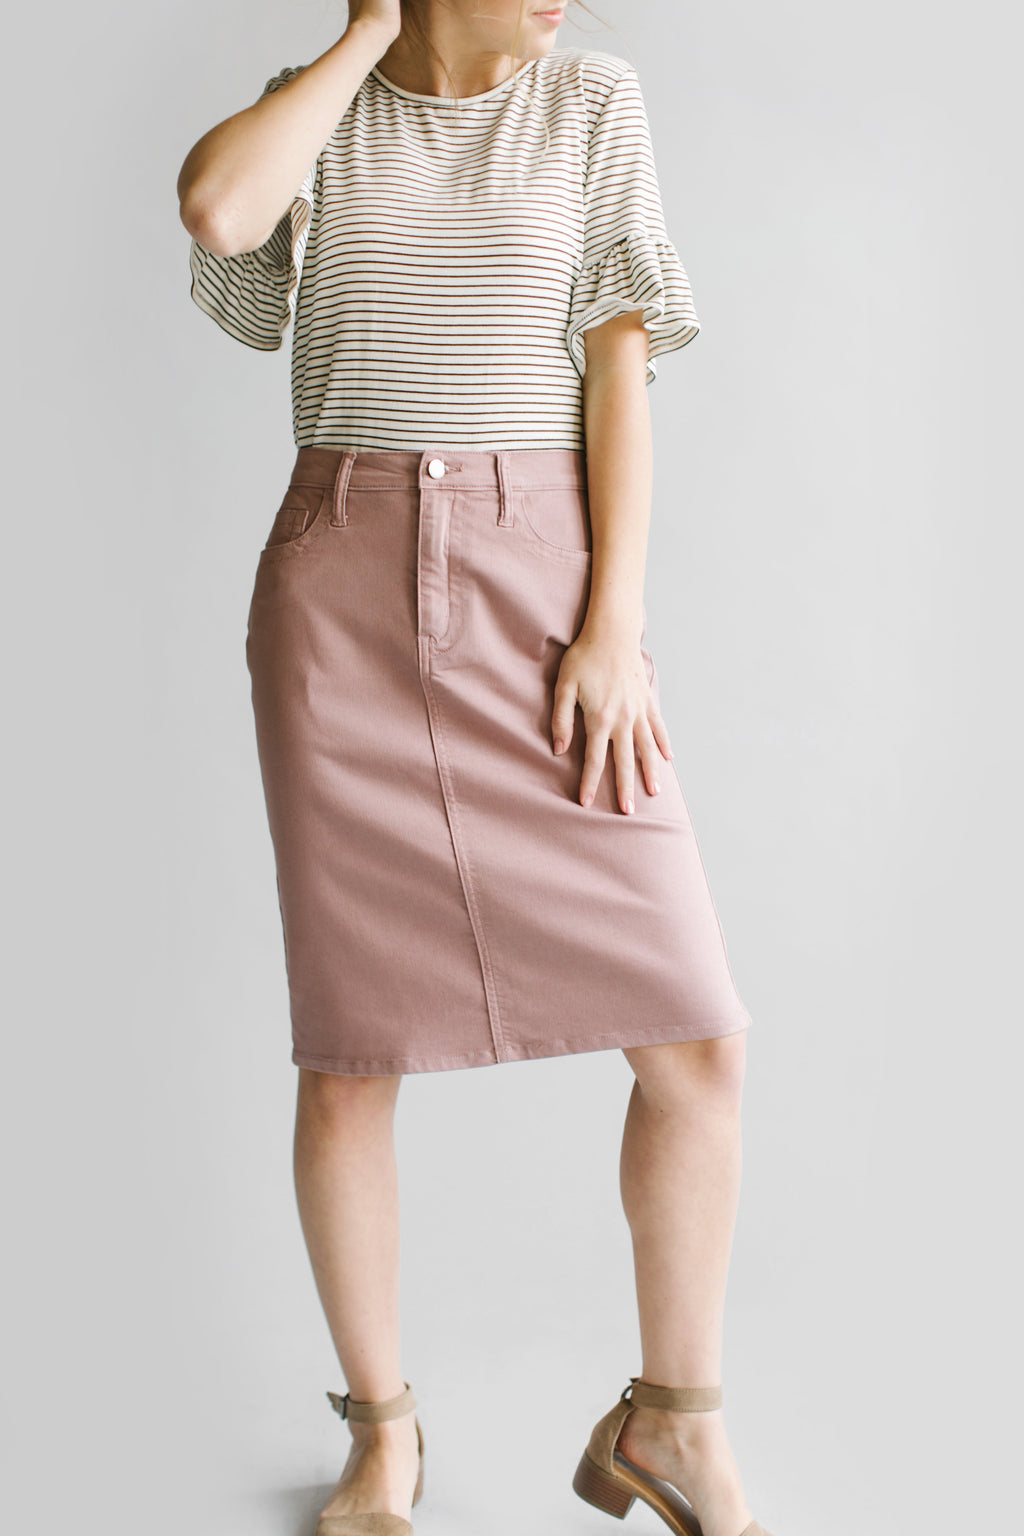 'Leah' Denim Skirt in Rose Blush